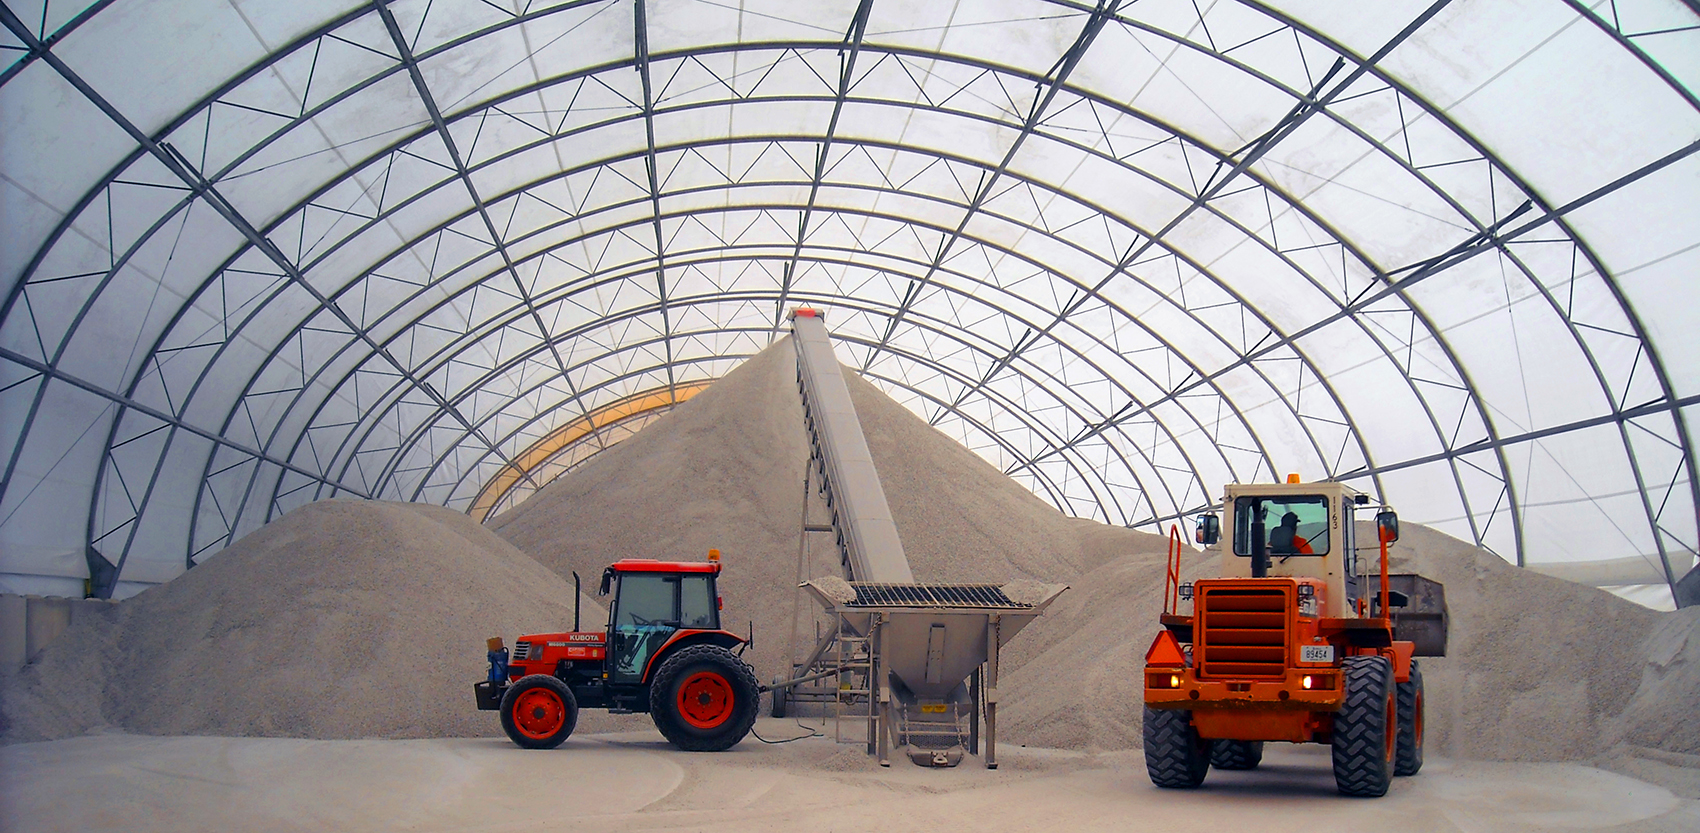 Tractors unloading salt inside a fabric-covered building